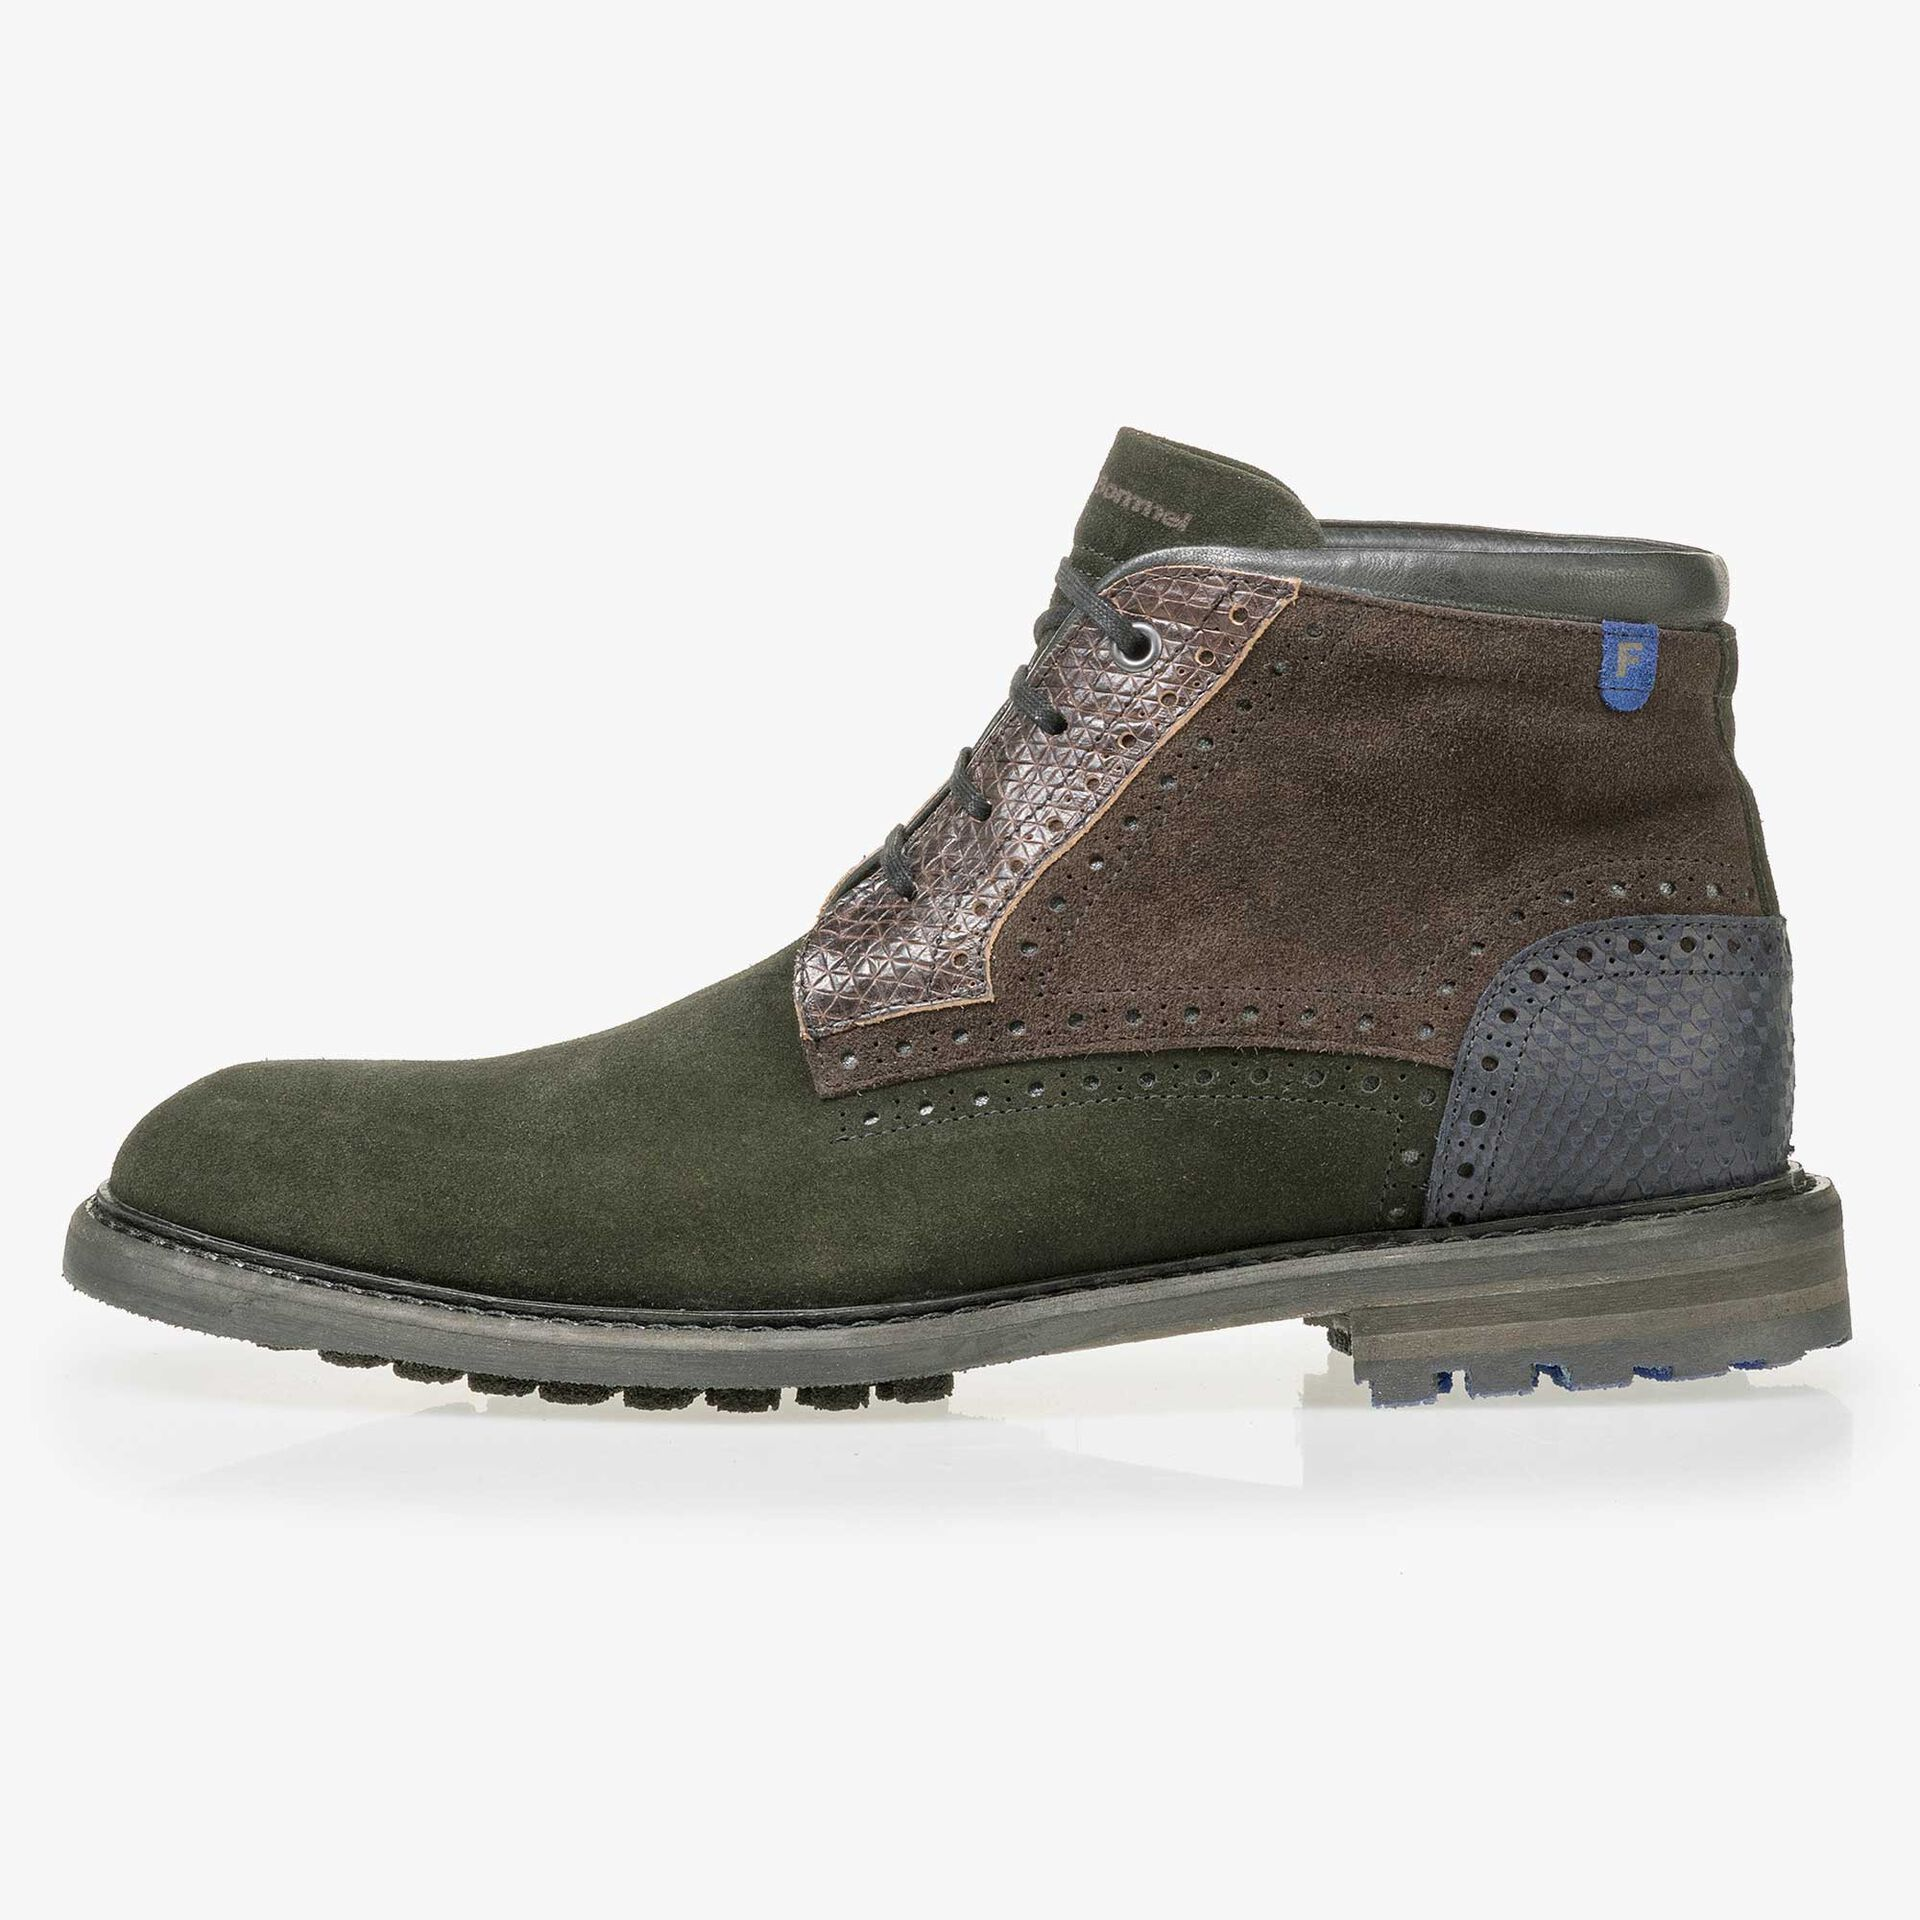 Floris van Bommel men's dark green suede leather lace boot